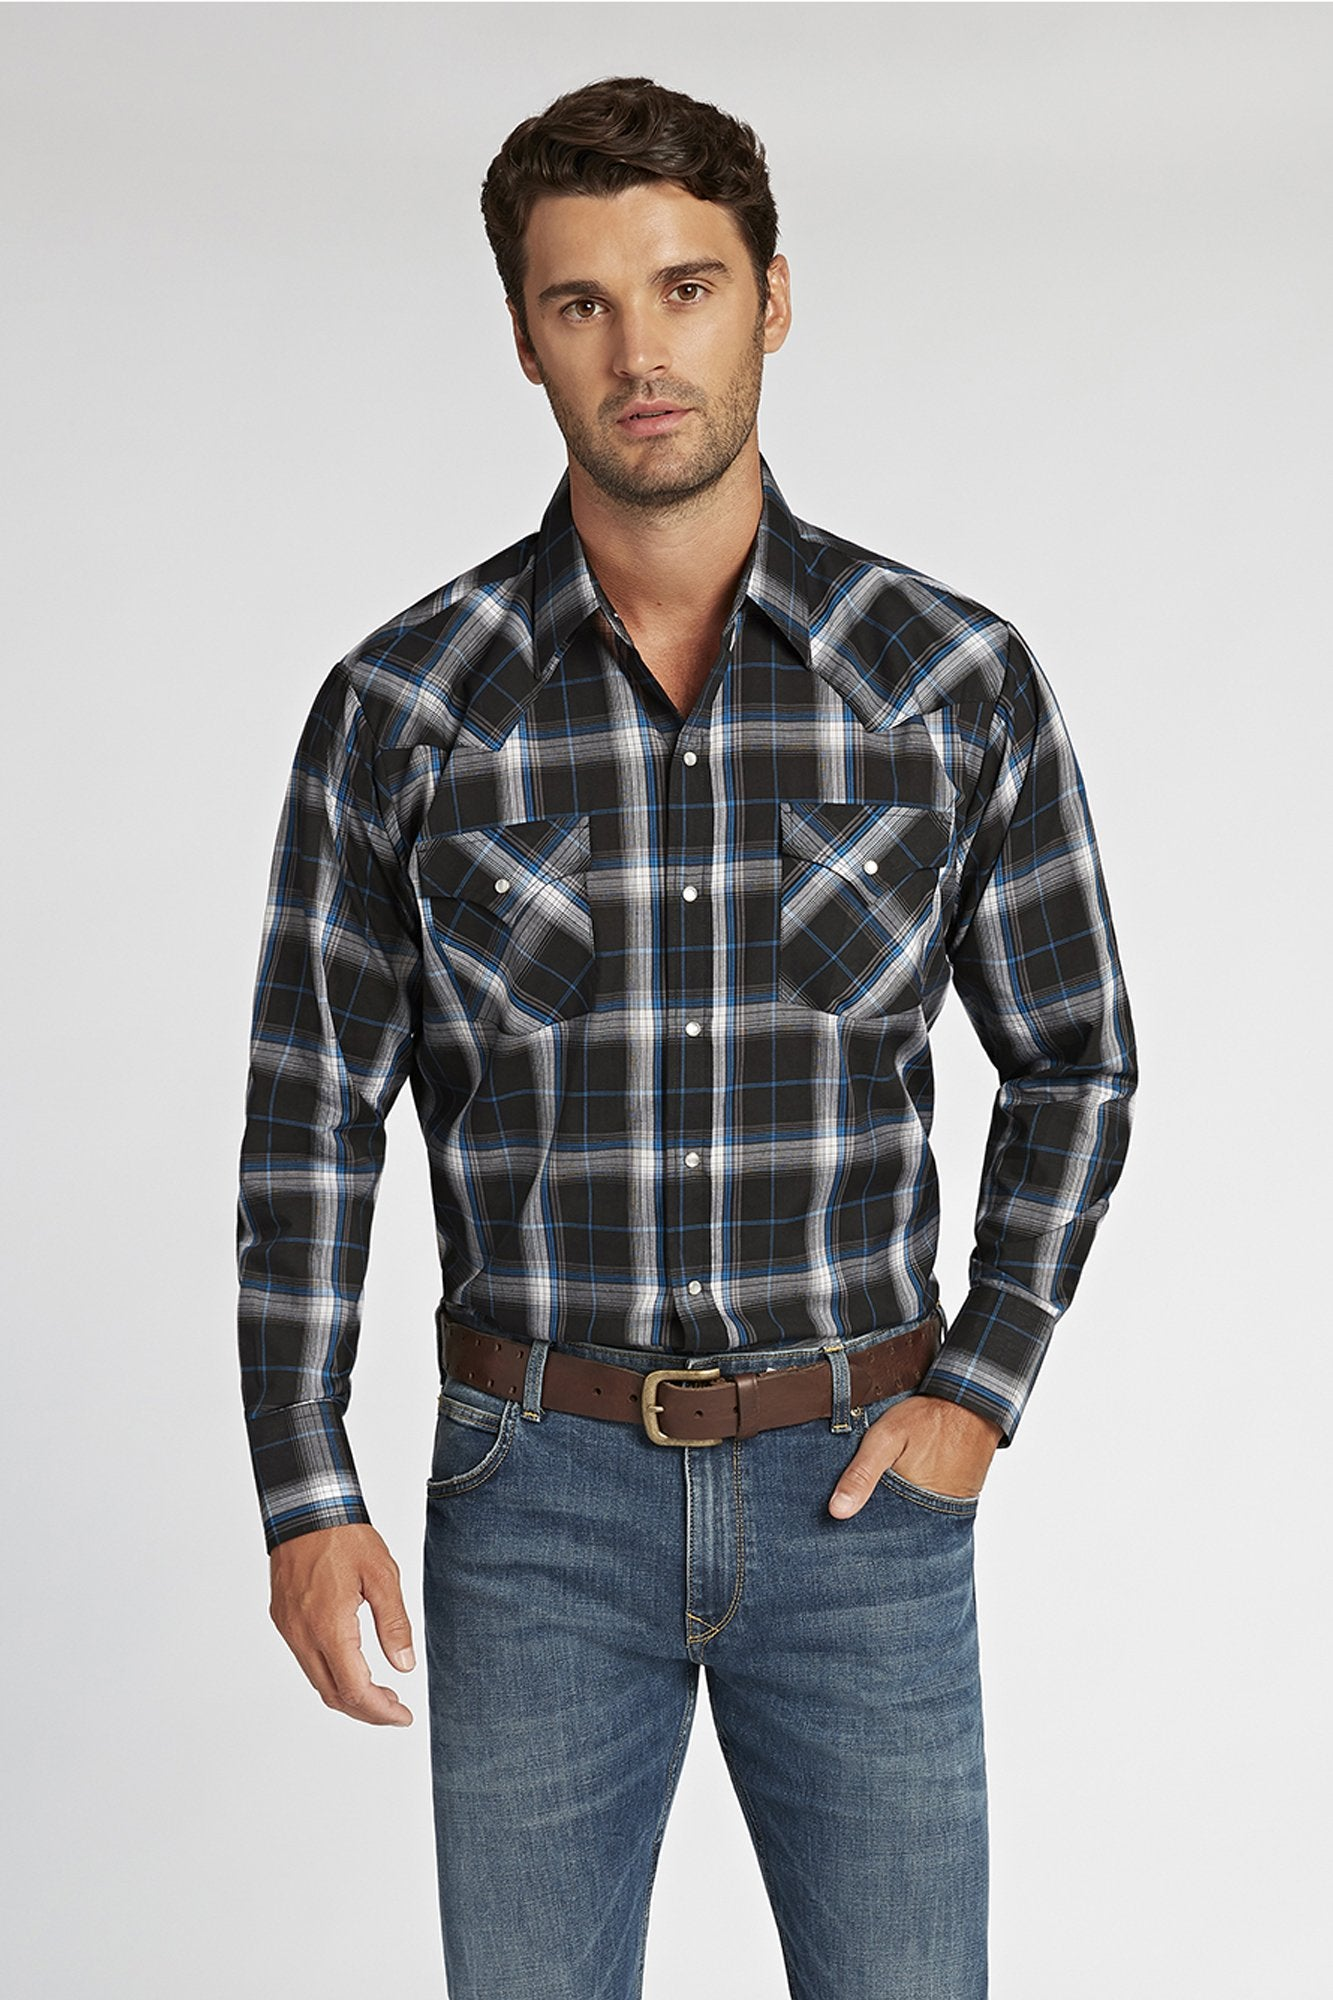 Long Sleeve Plaid Shirt in Black Plaid | Ely Cattleman